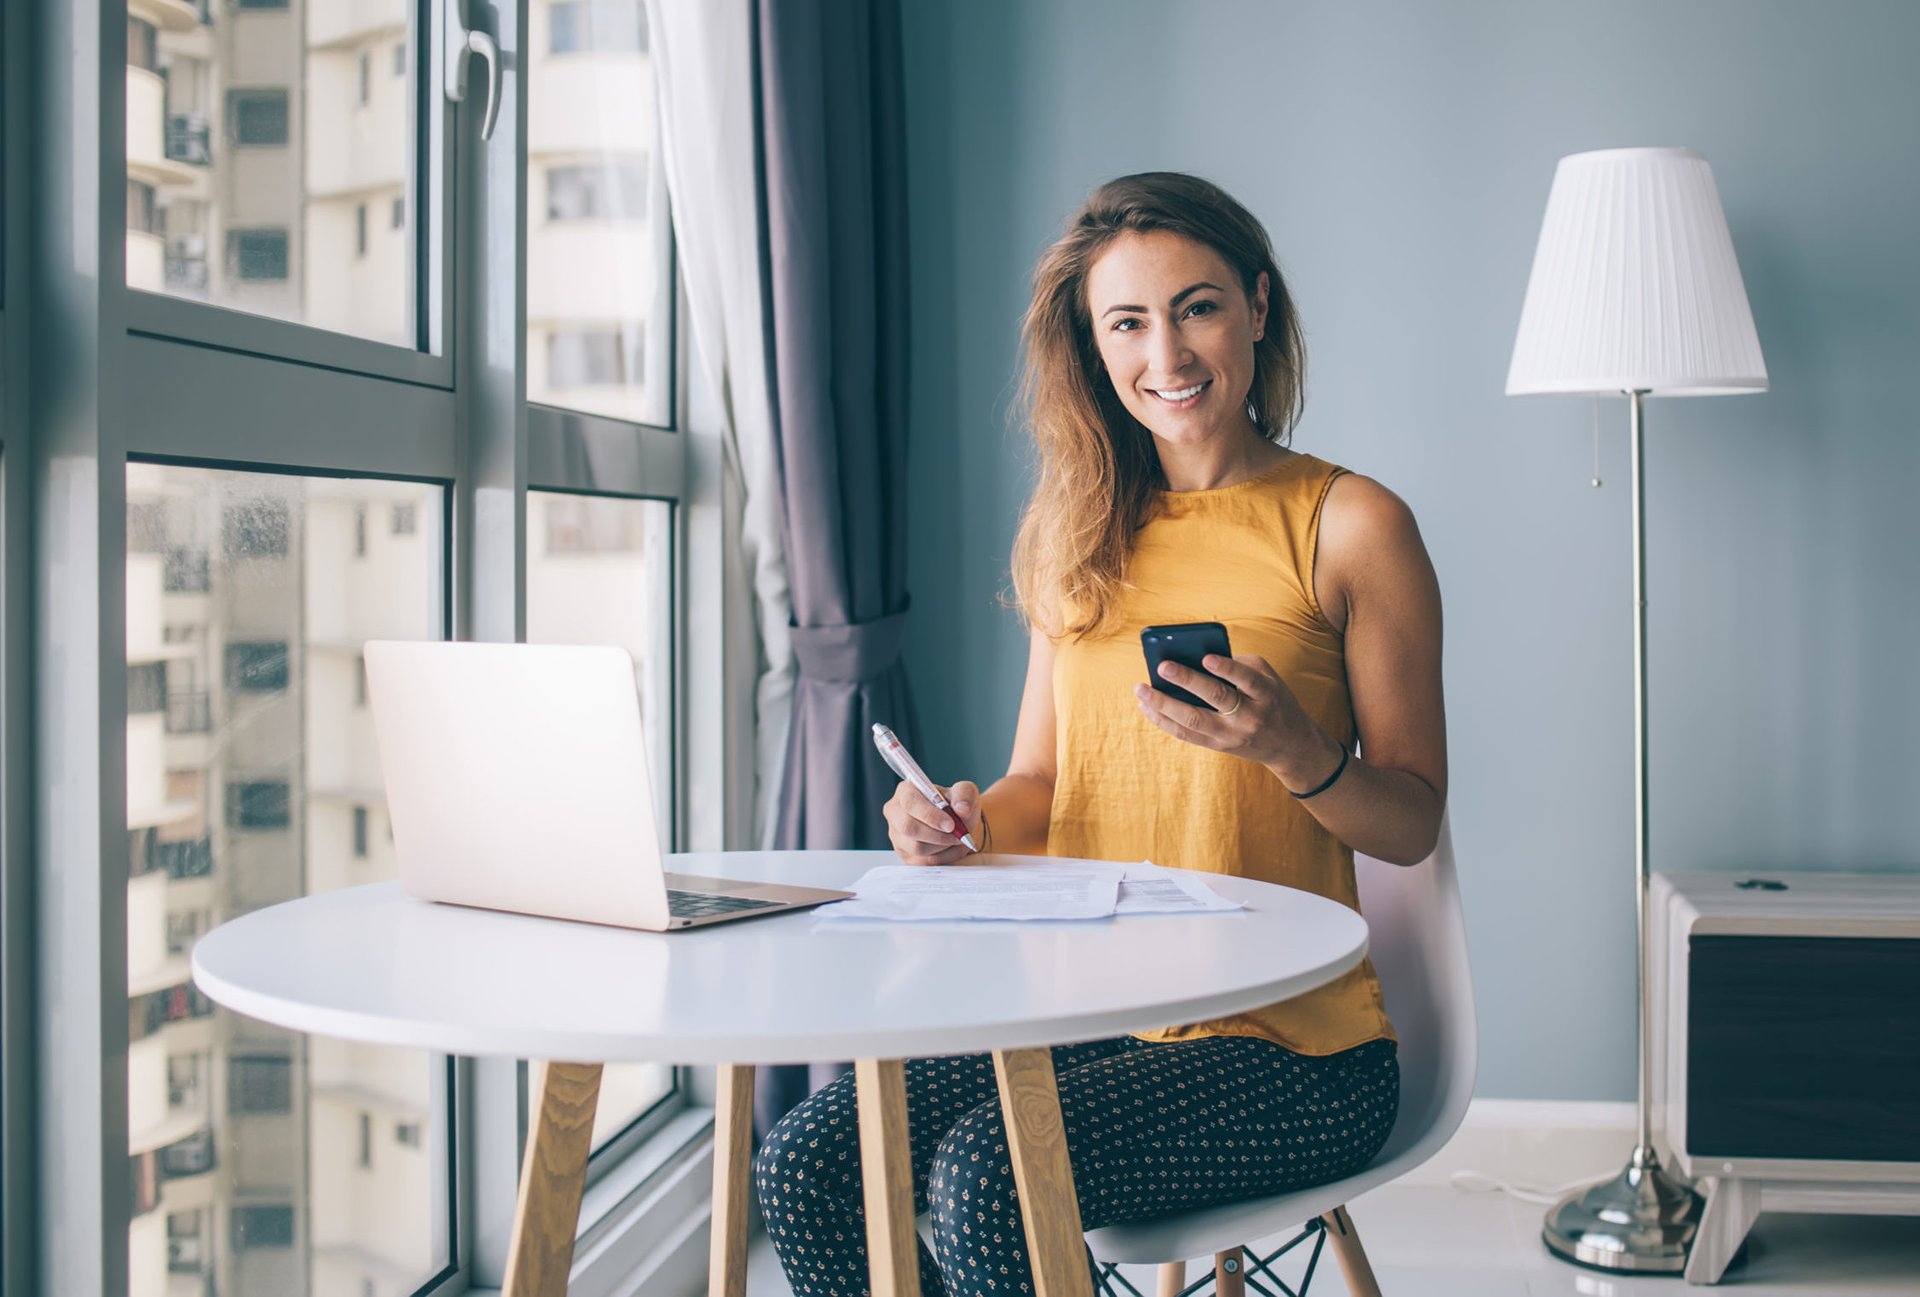 Woman working from home on computer and phone